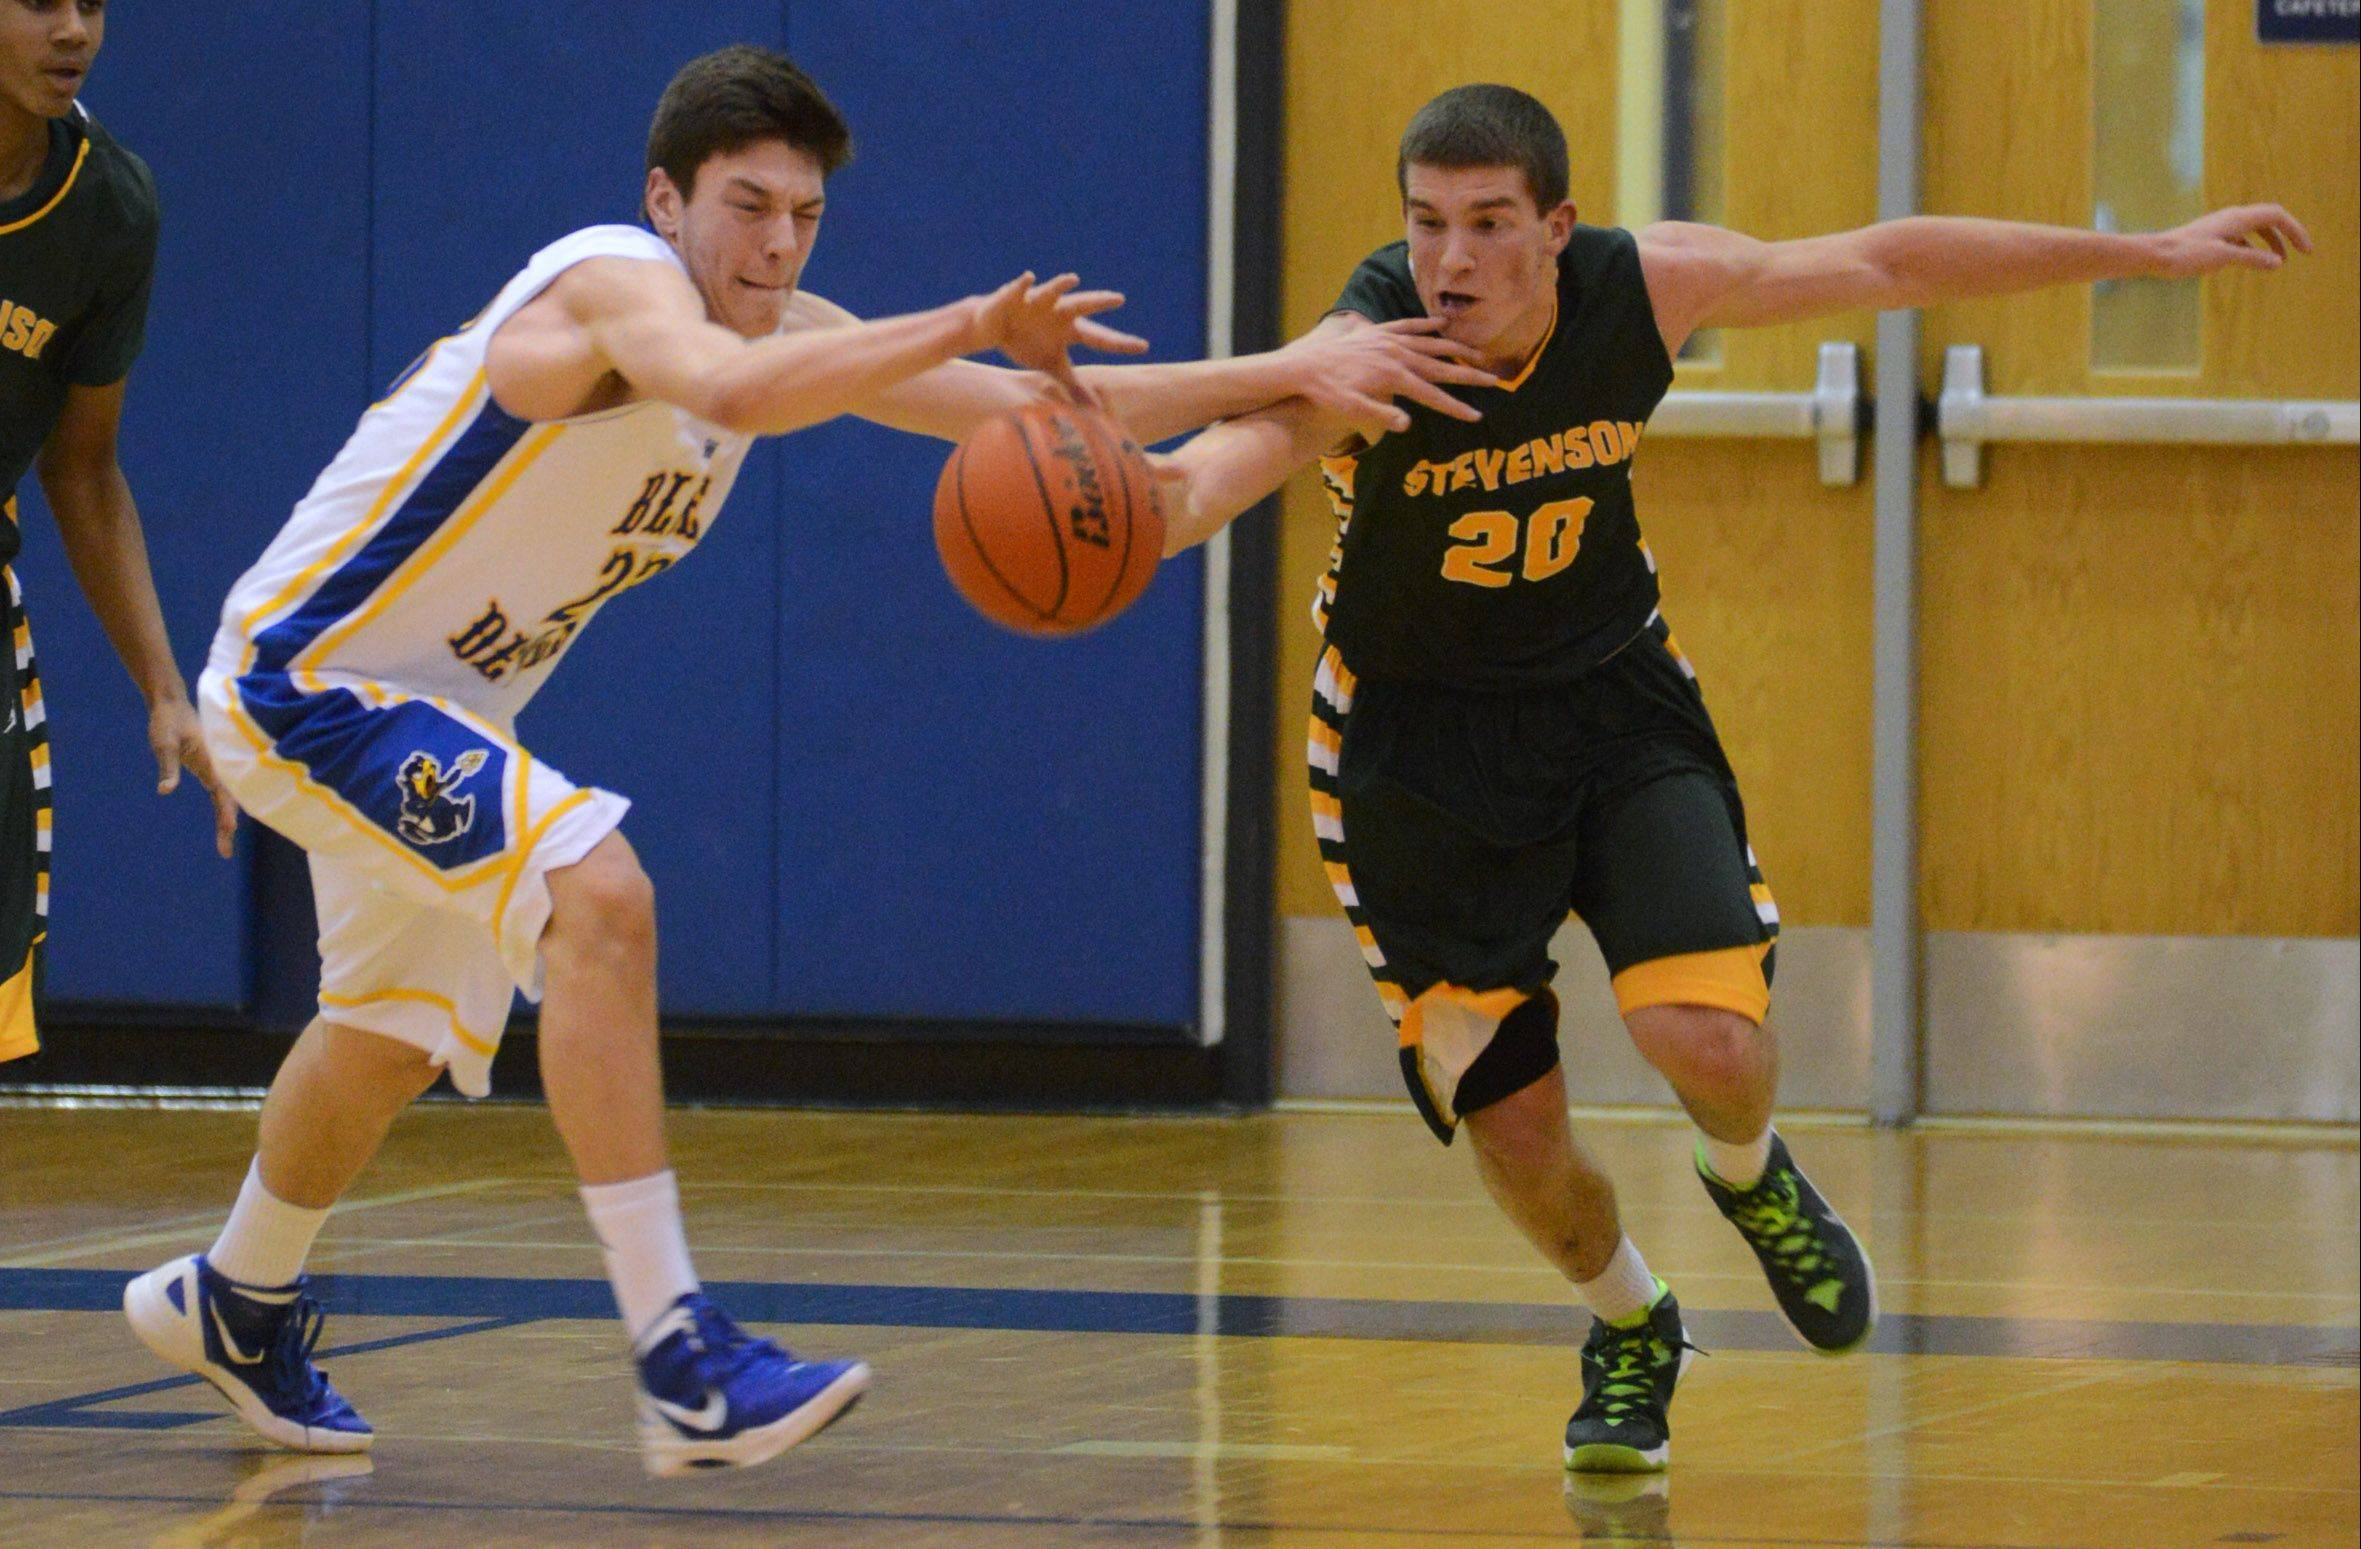 Warren's Jovan Jokic, left, and Stevenson's Matthew Morrissey race to the ball during Friday's game in Gurnee.